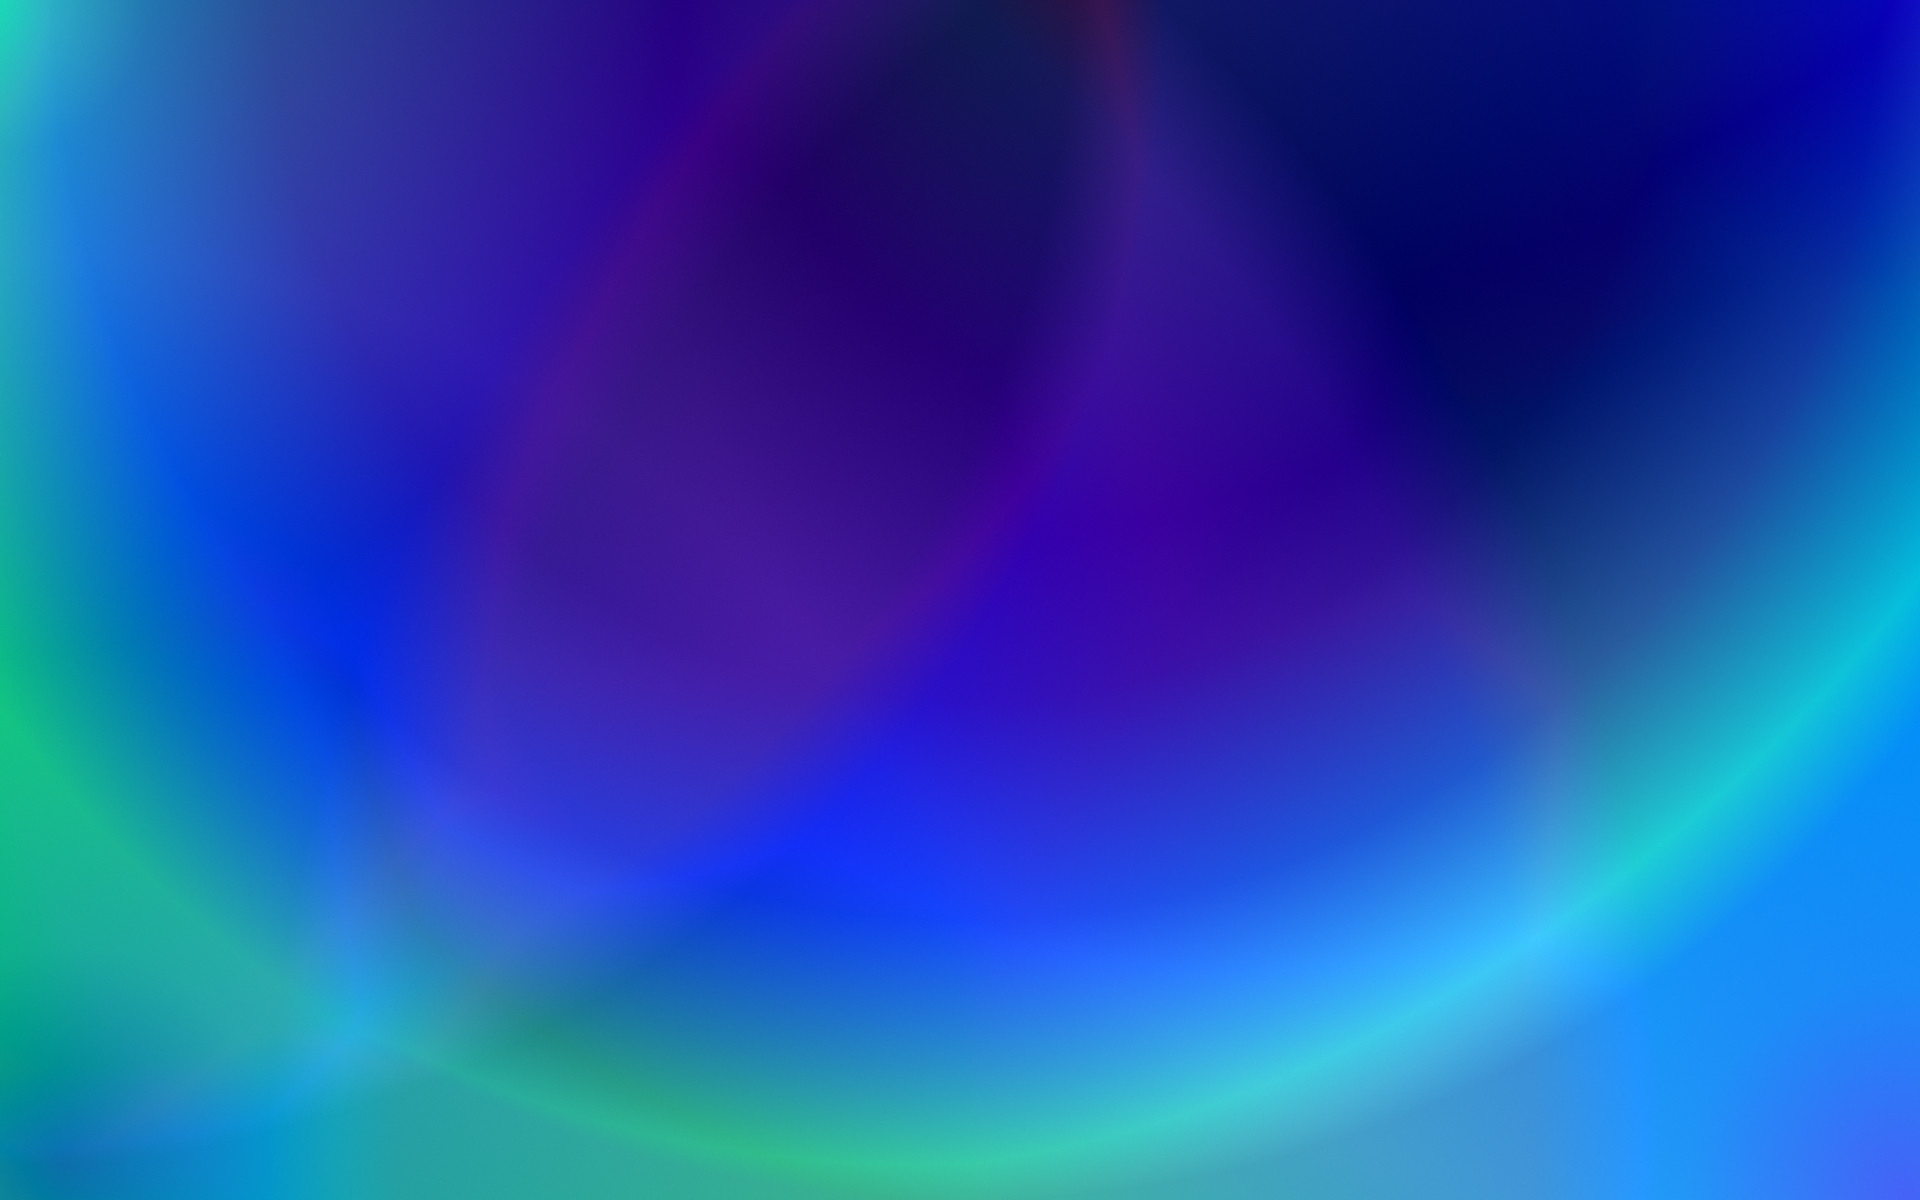 Neon Blue Backgrounds ·①